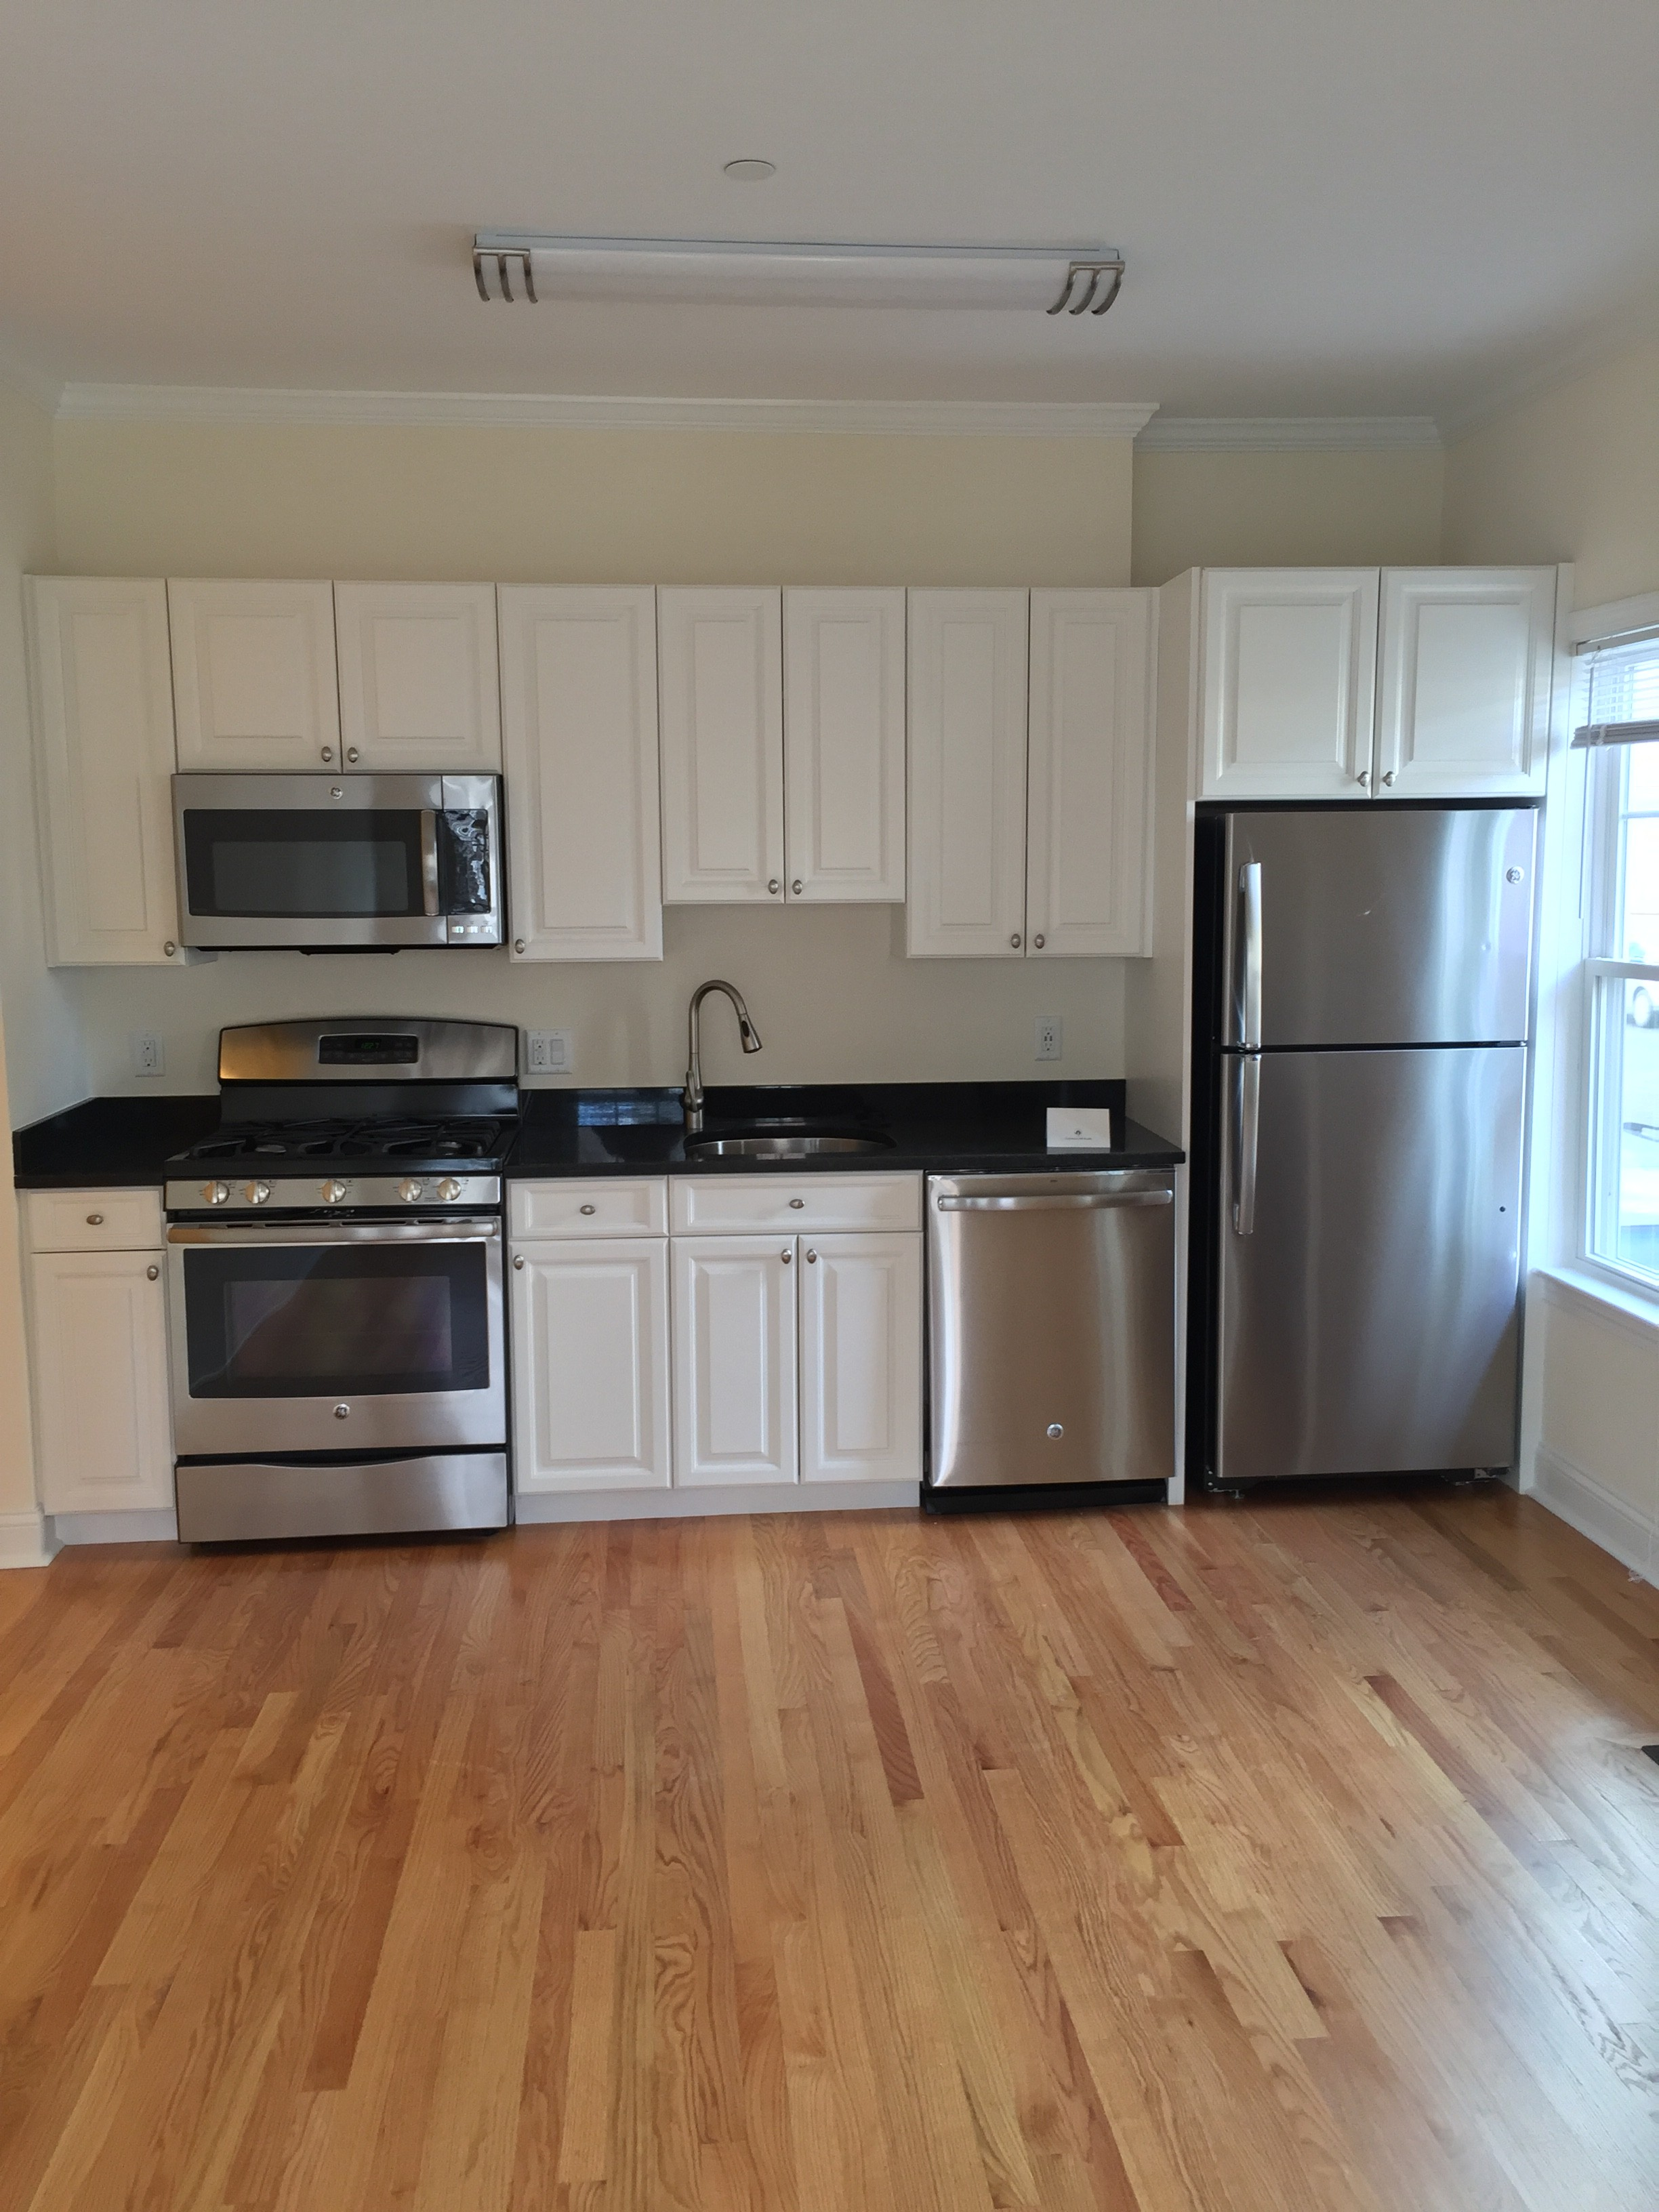 65 langdon st cambridge ma 02138 2 bedroom apartment for rent for